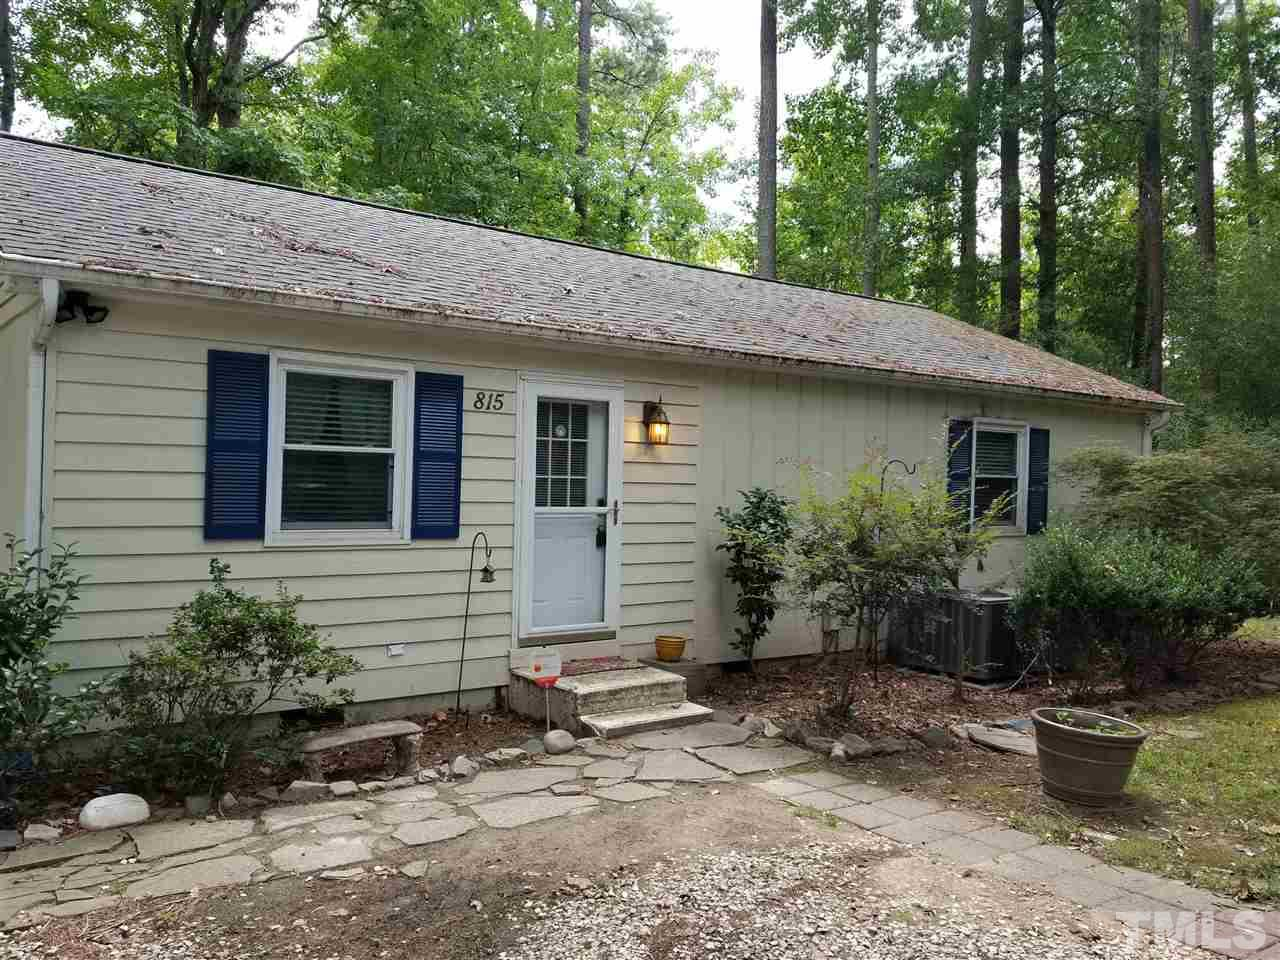 815 GRIFFIS STREET, CARY, NC 27511